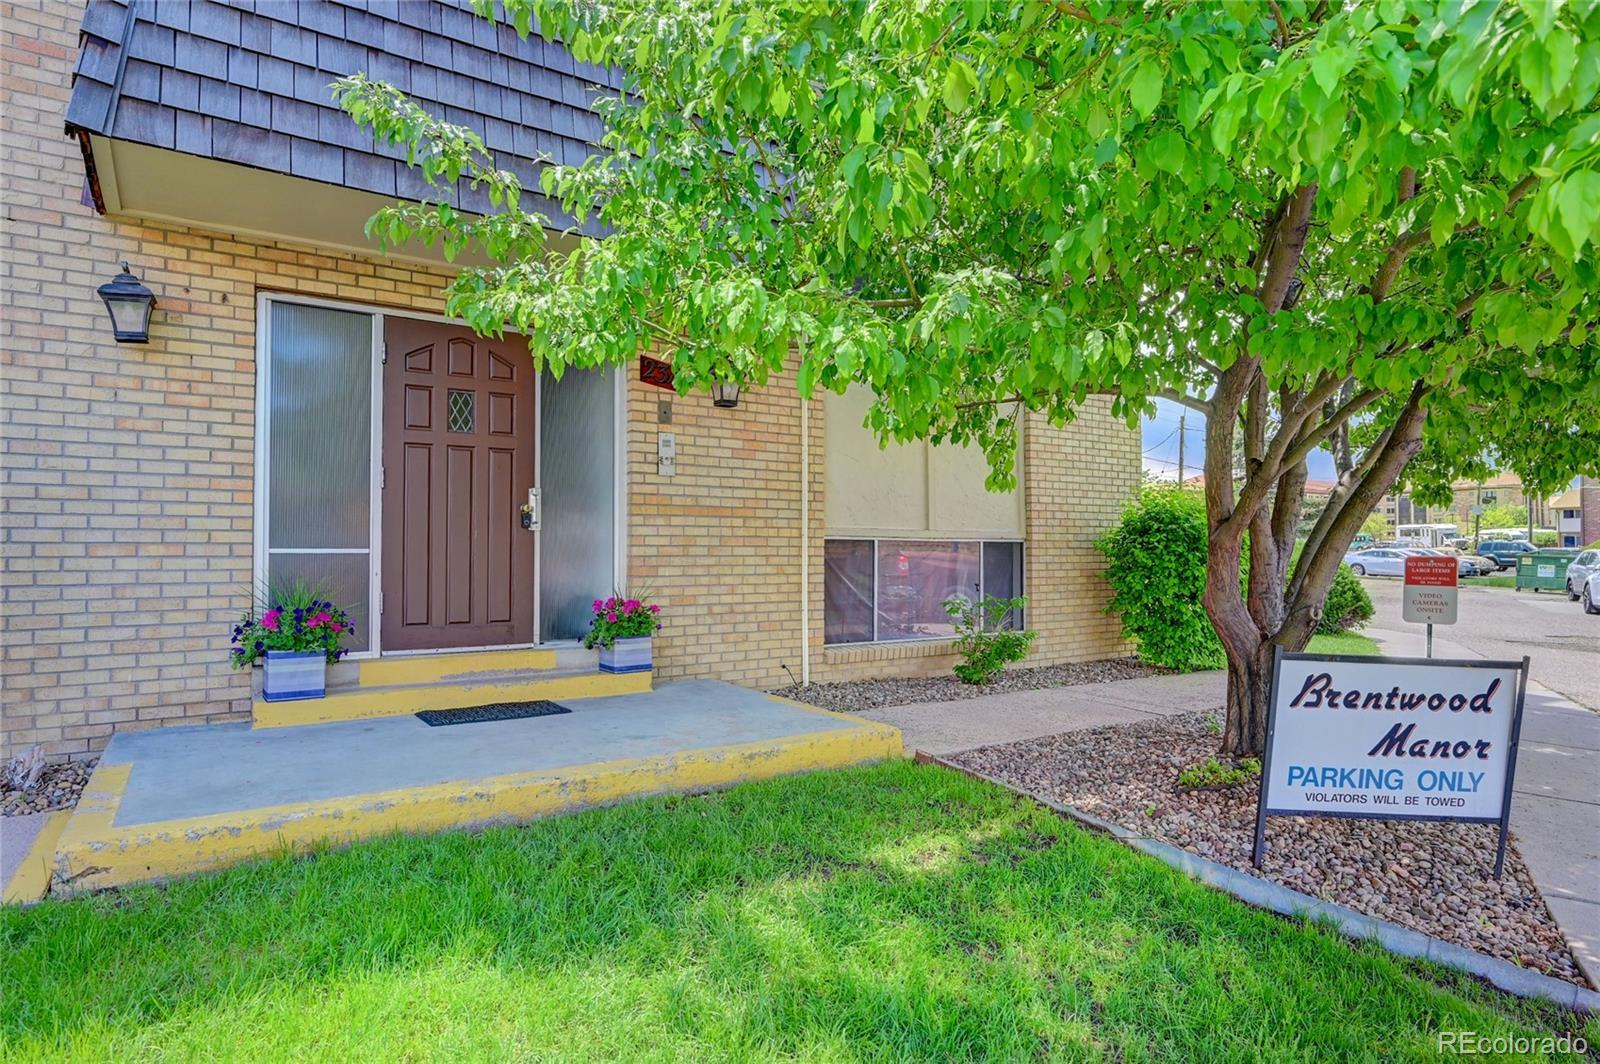 234 S Brentwood Street #206, Lakewood, CO 80226 - #: 5064777